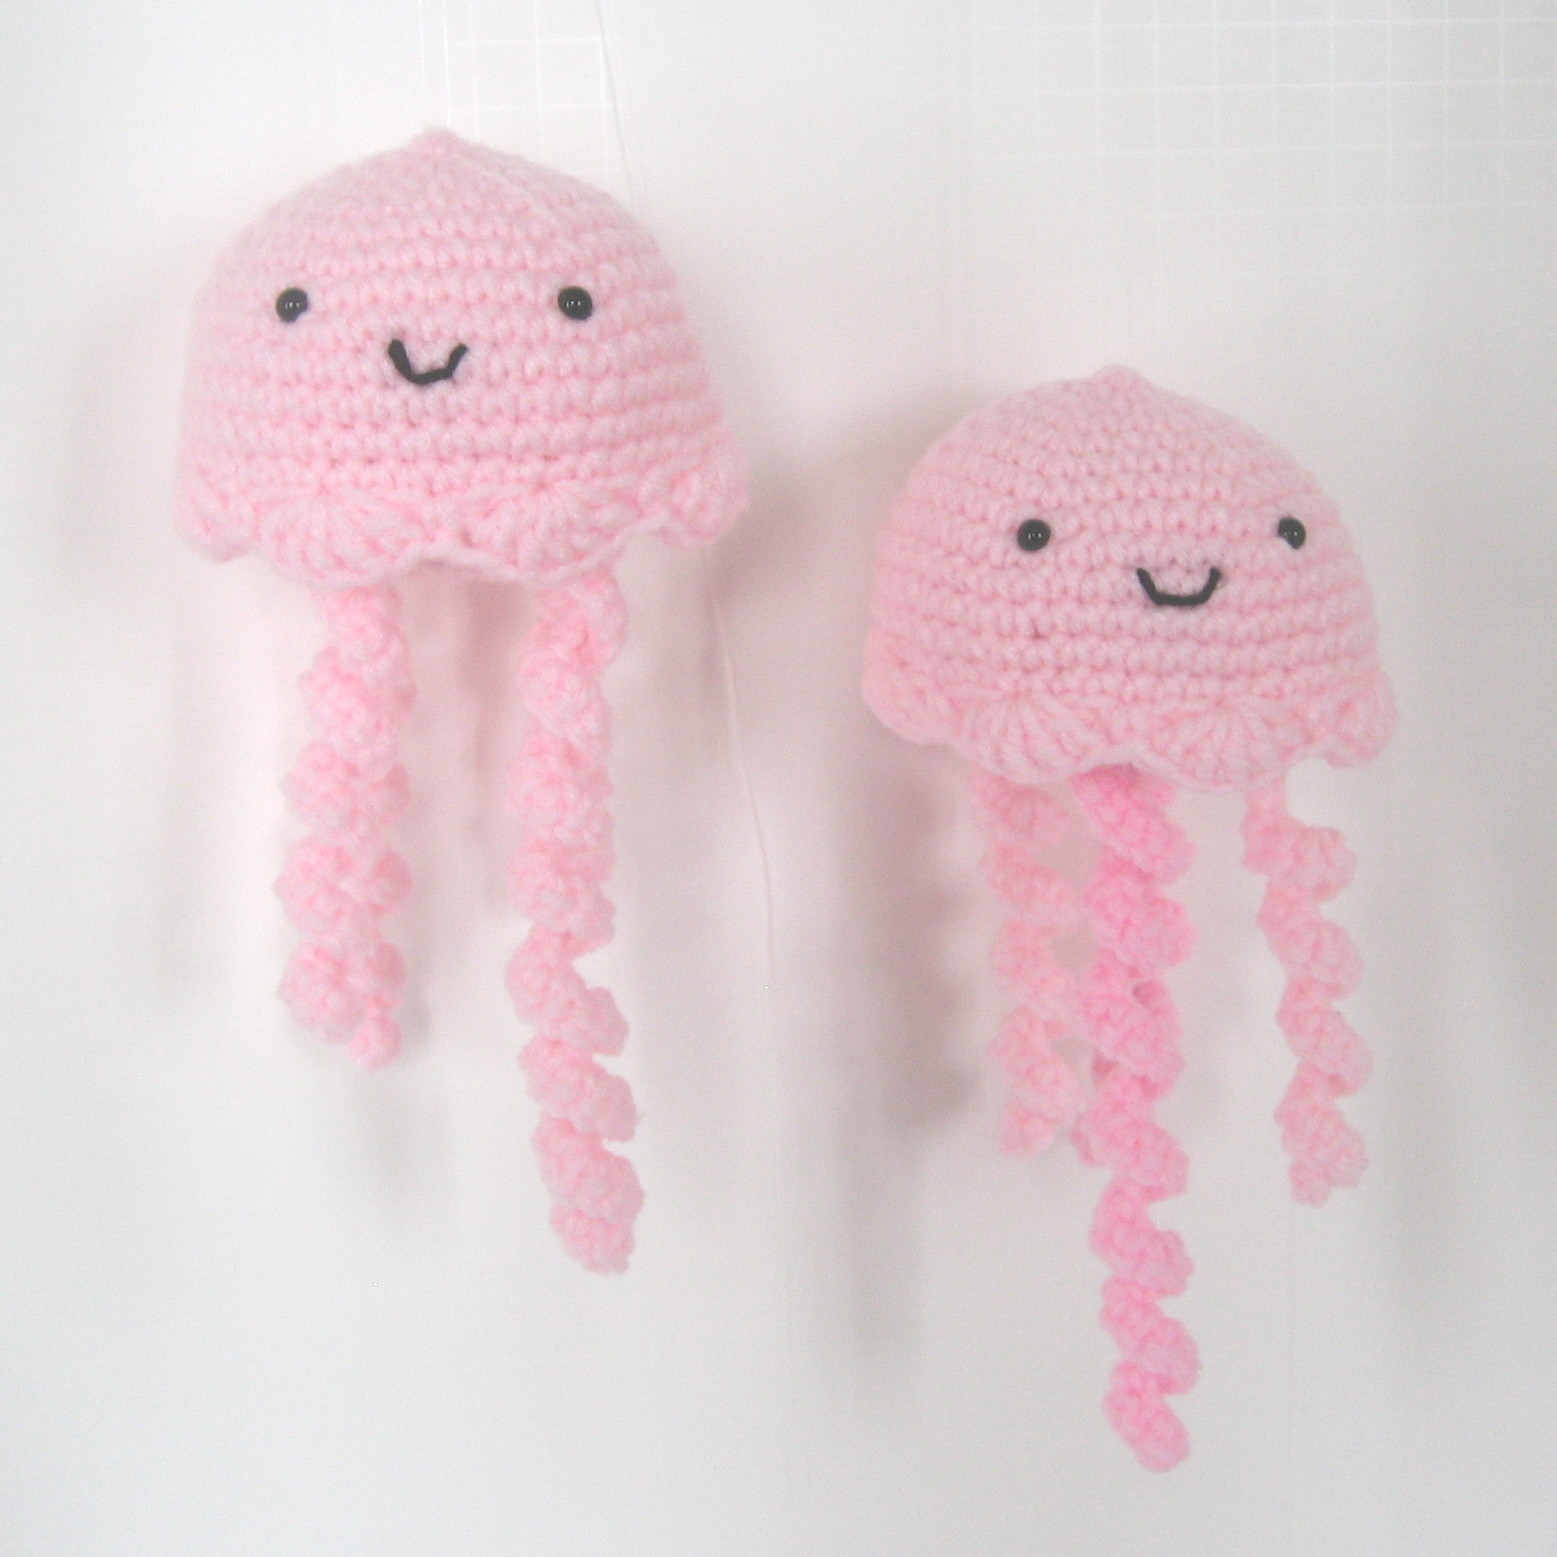 Free Crochet Pattern For Jellyfish : CROCHET N PLAY DESIGNS: Free Crochet Pattern: Jellyfish